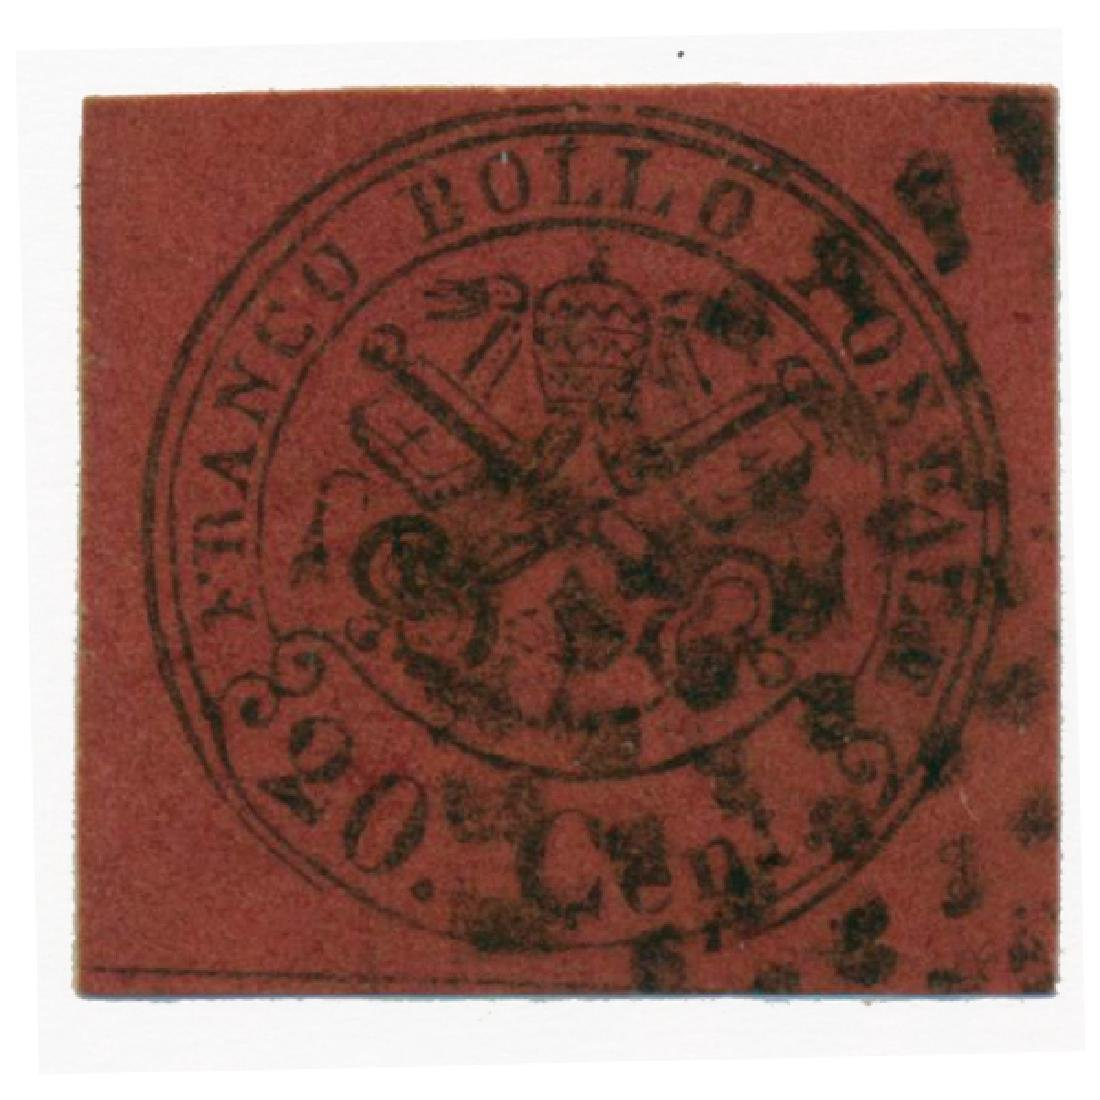 1867 Italy Papal States 20c Used